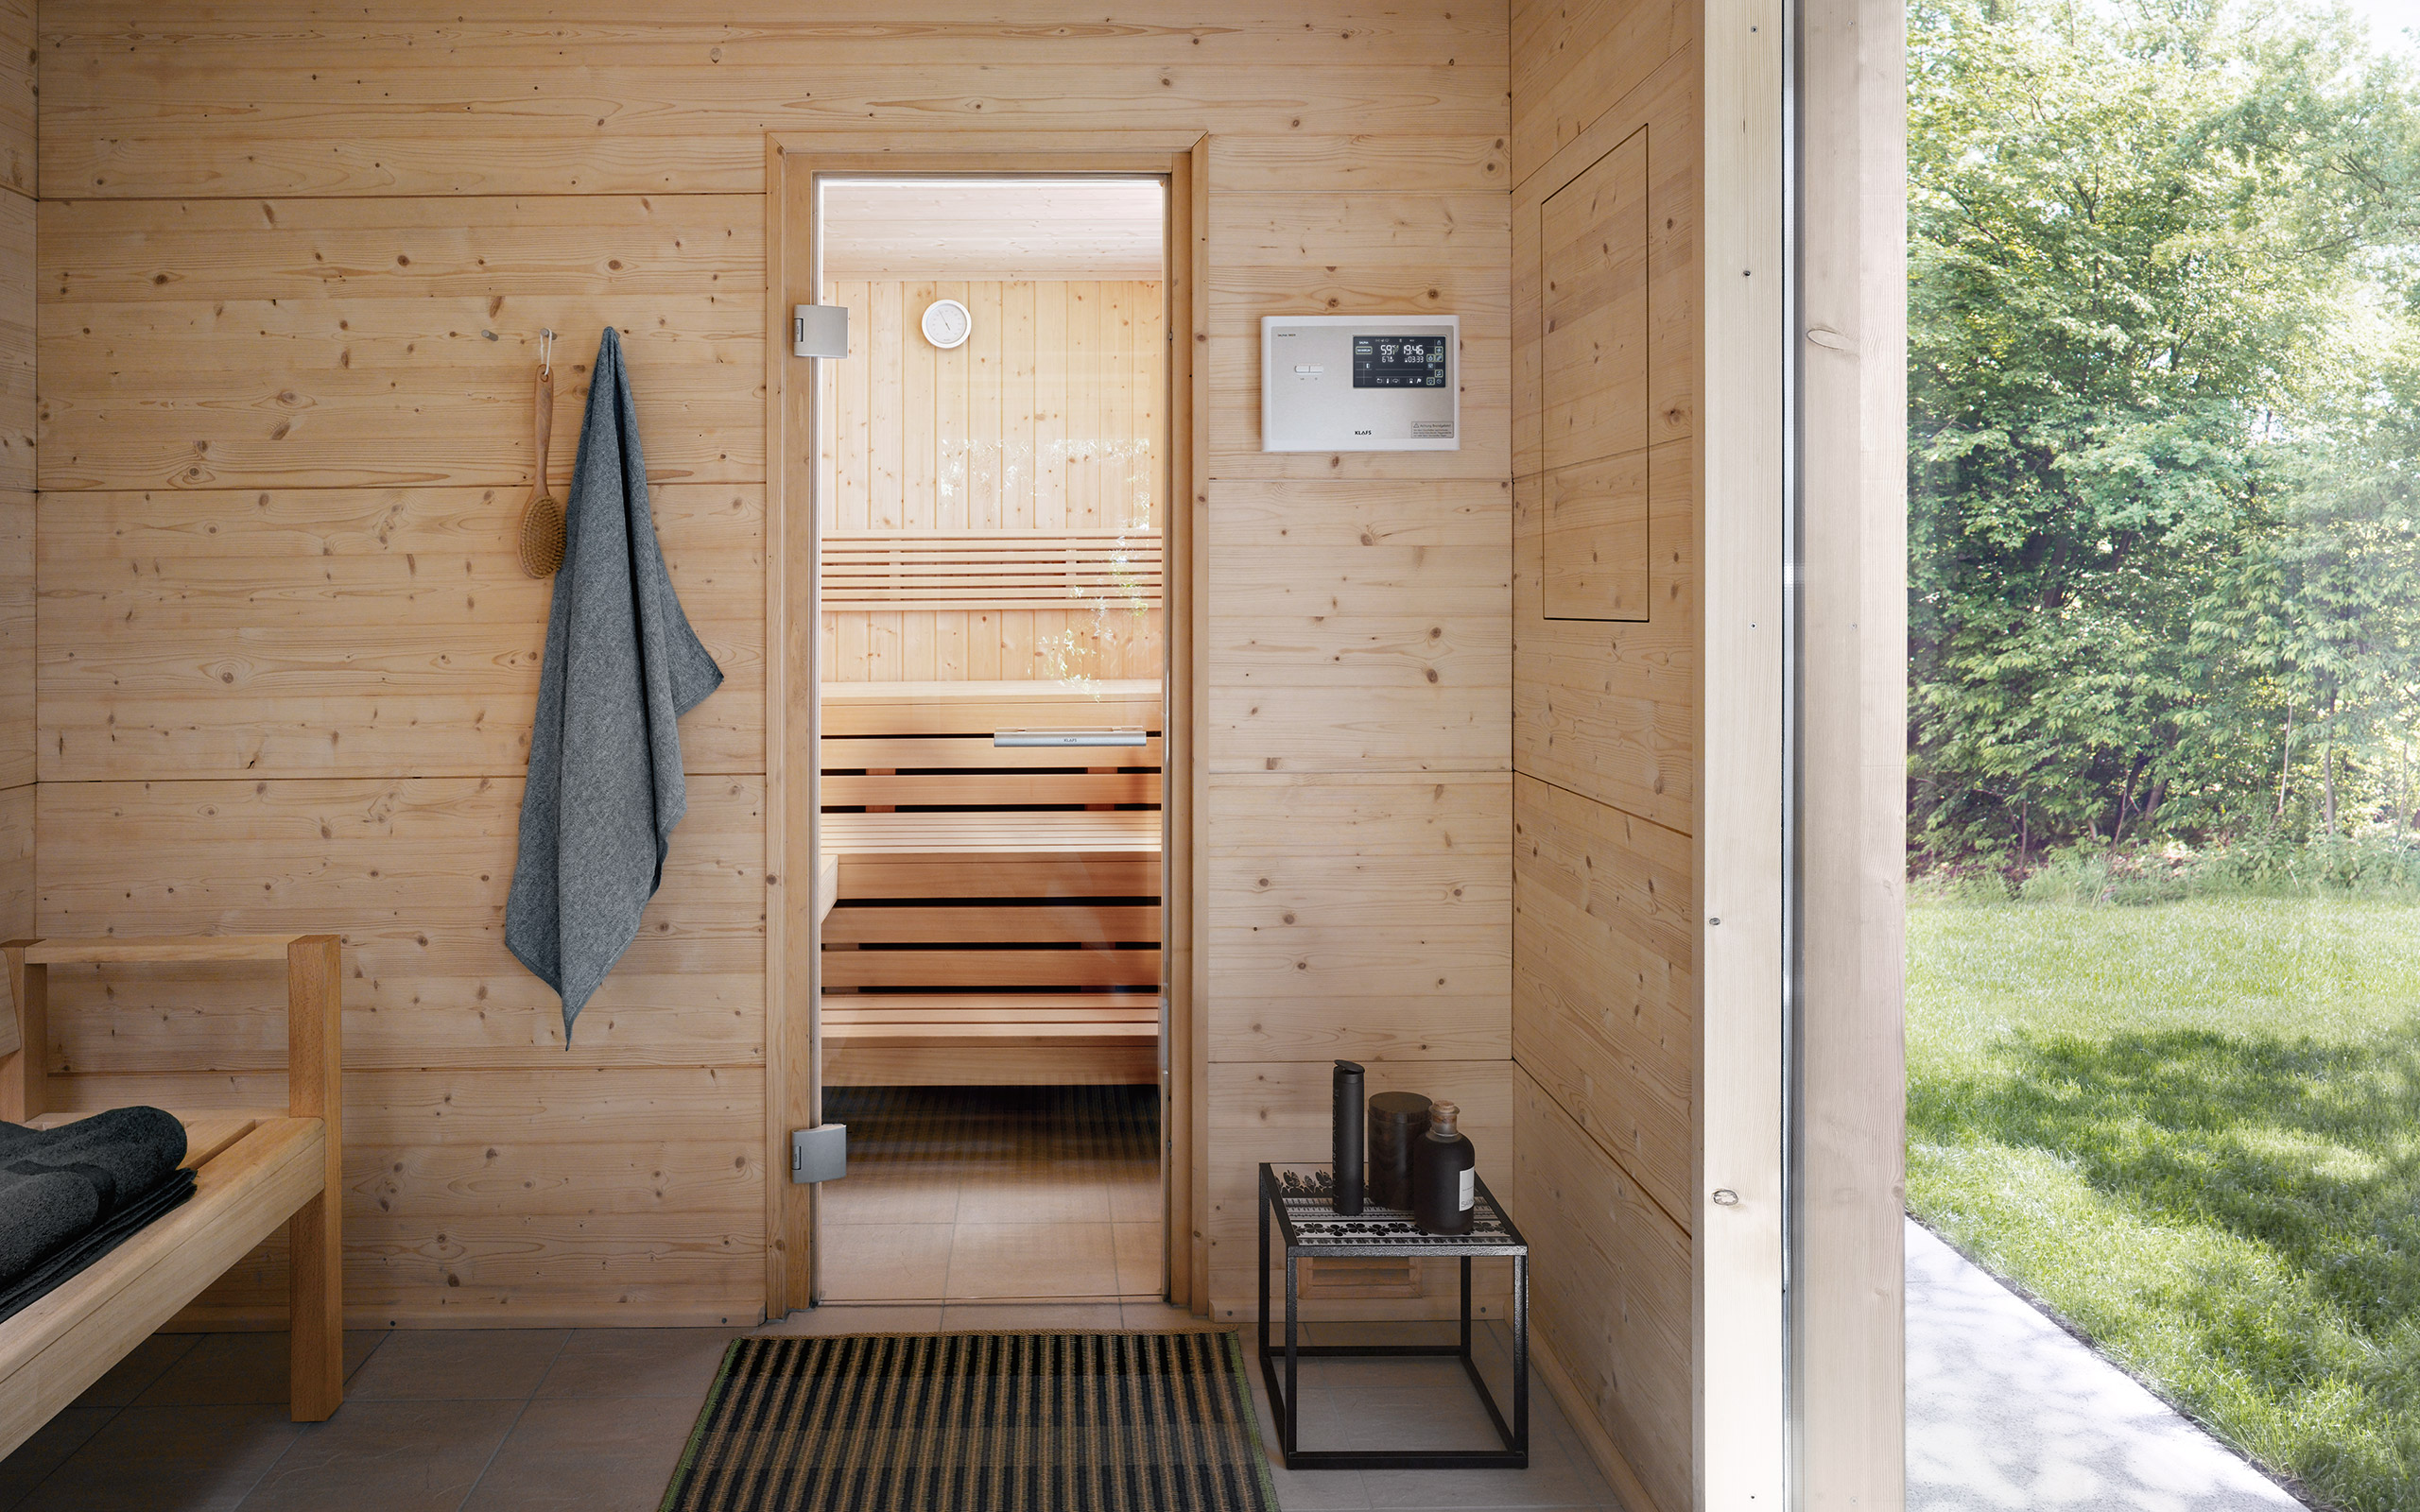 Klafs Aussensauna Talo Outdoor Sauna: Swathed In Natural Surroundings